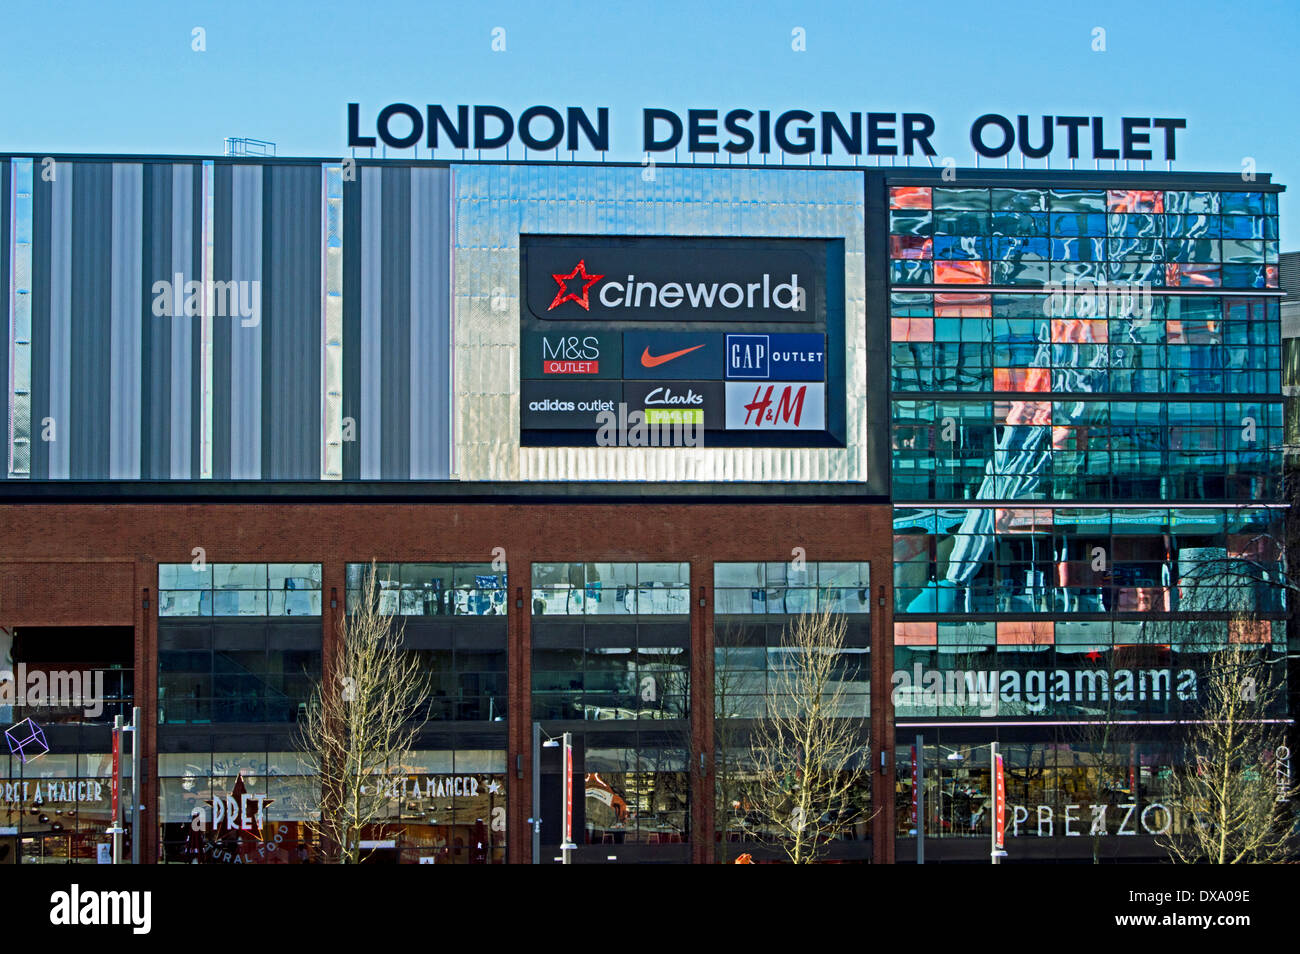 View of the London Designer Outlet, Wembley Park, London Borough of Brent, London, England, United Kingdom - Stock Image